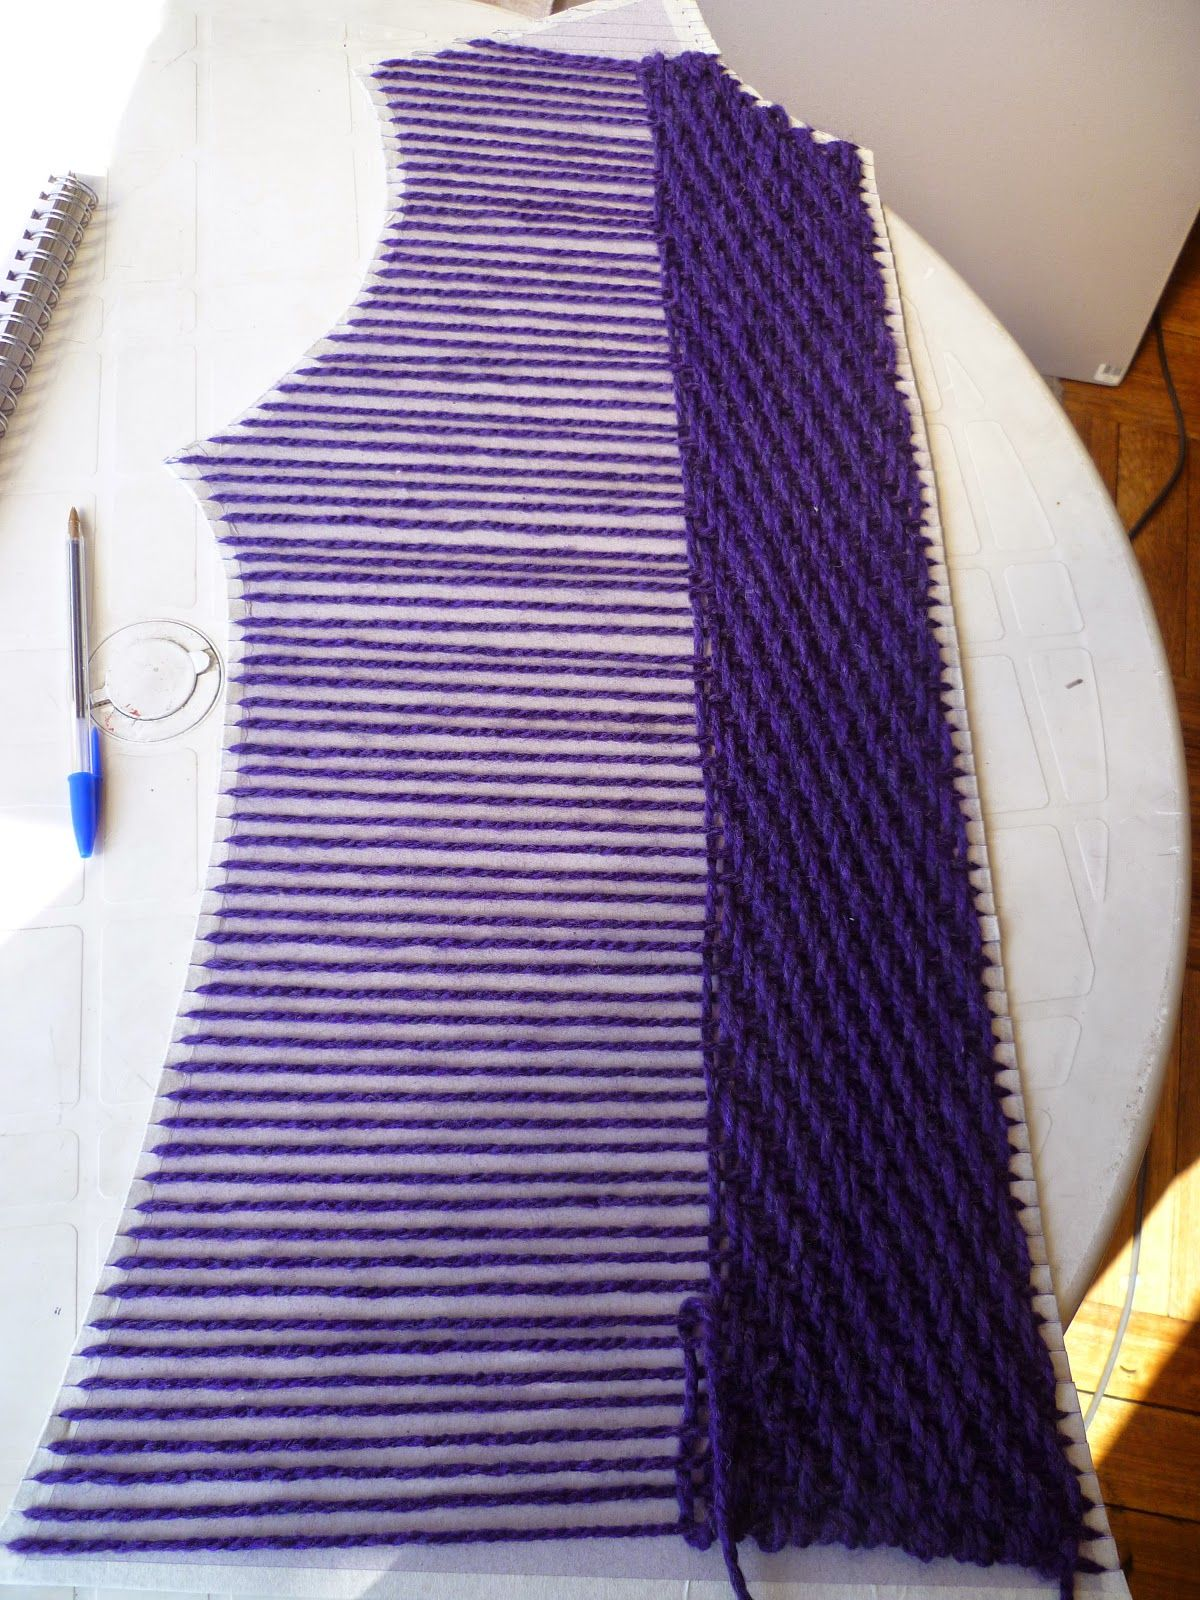 Ktog Knitting : This cardboard loom is a clothing pattern various pieces